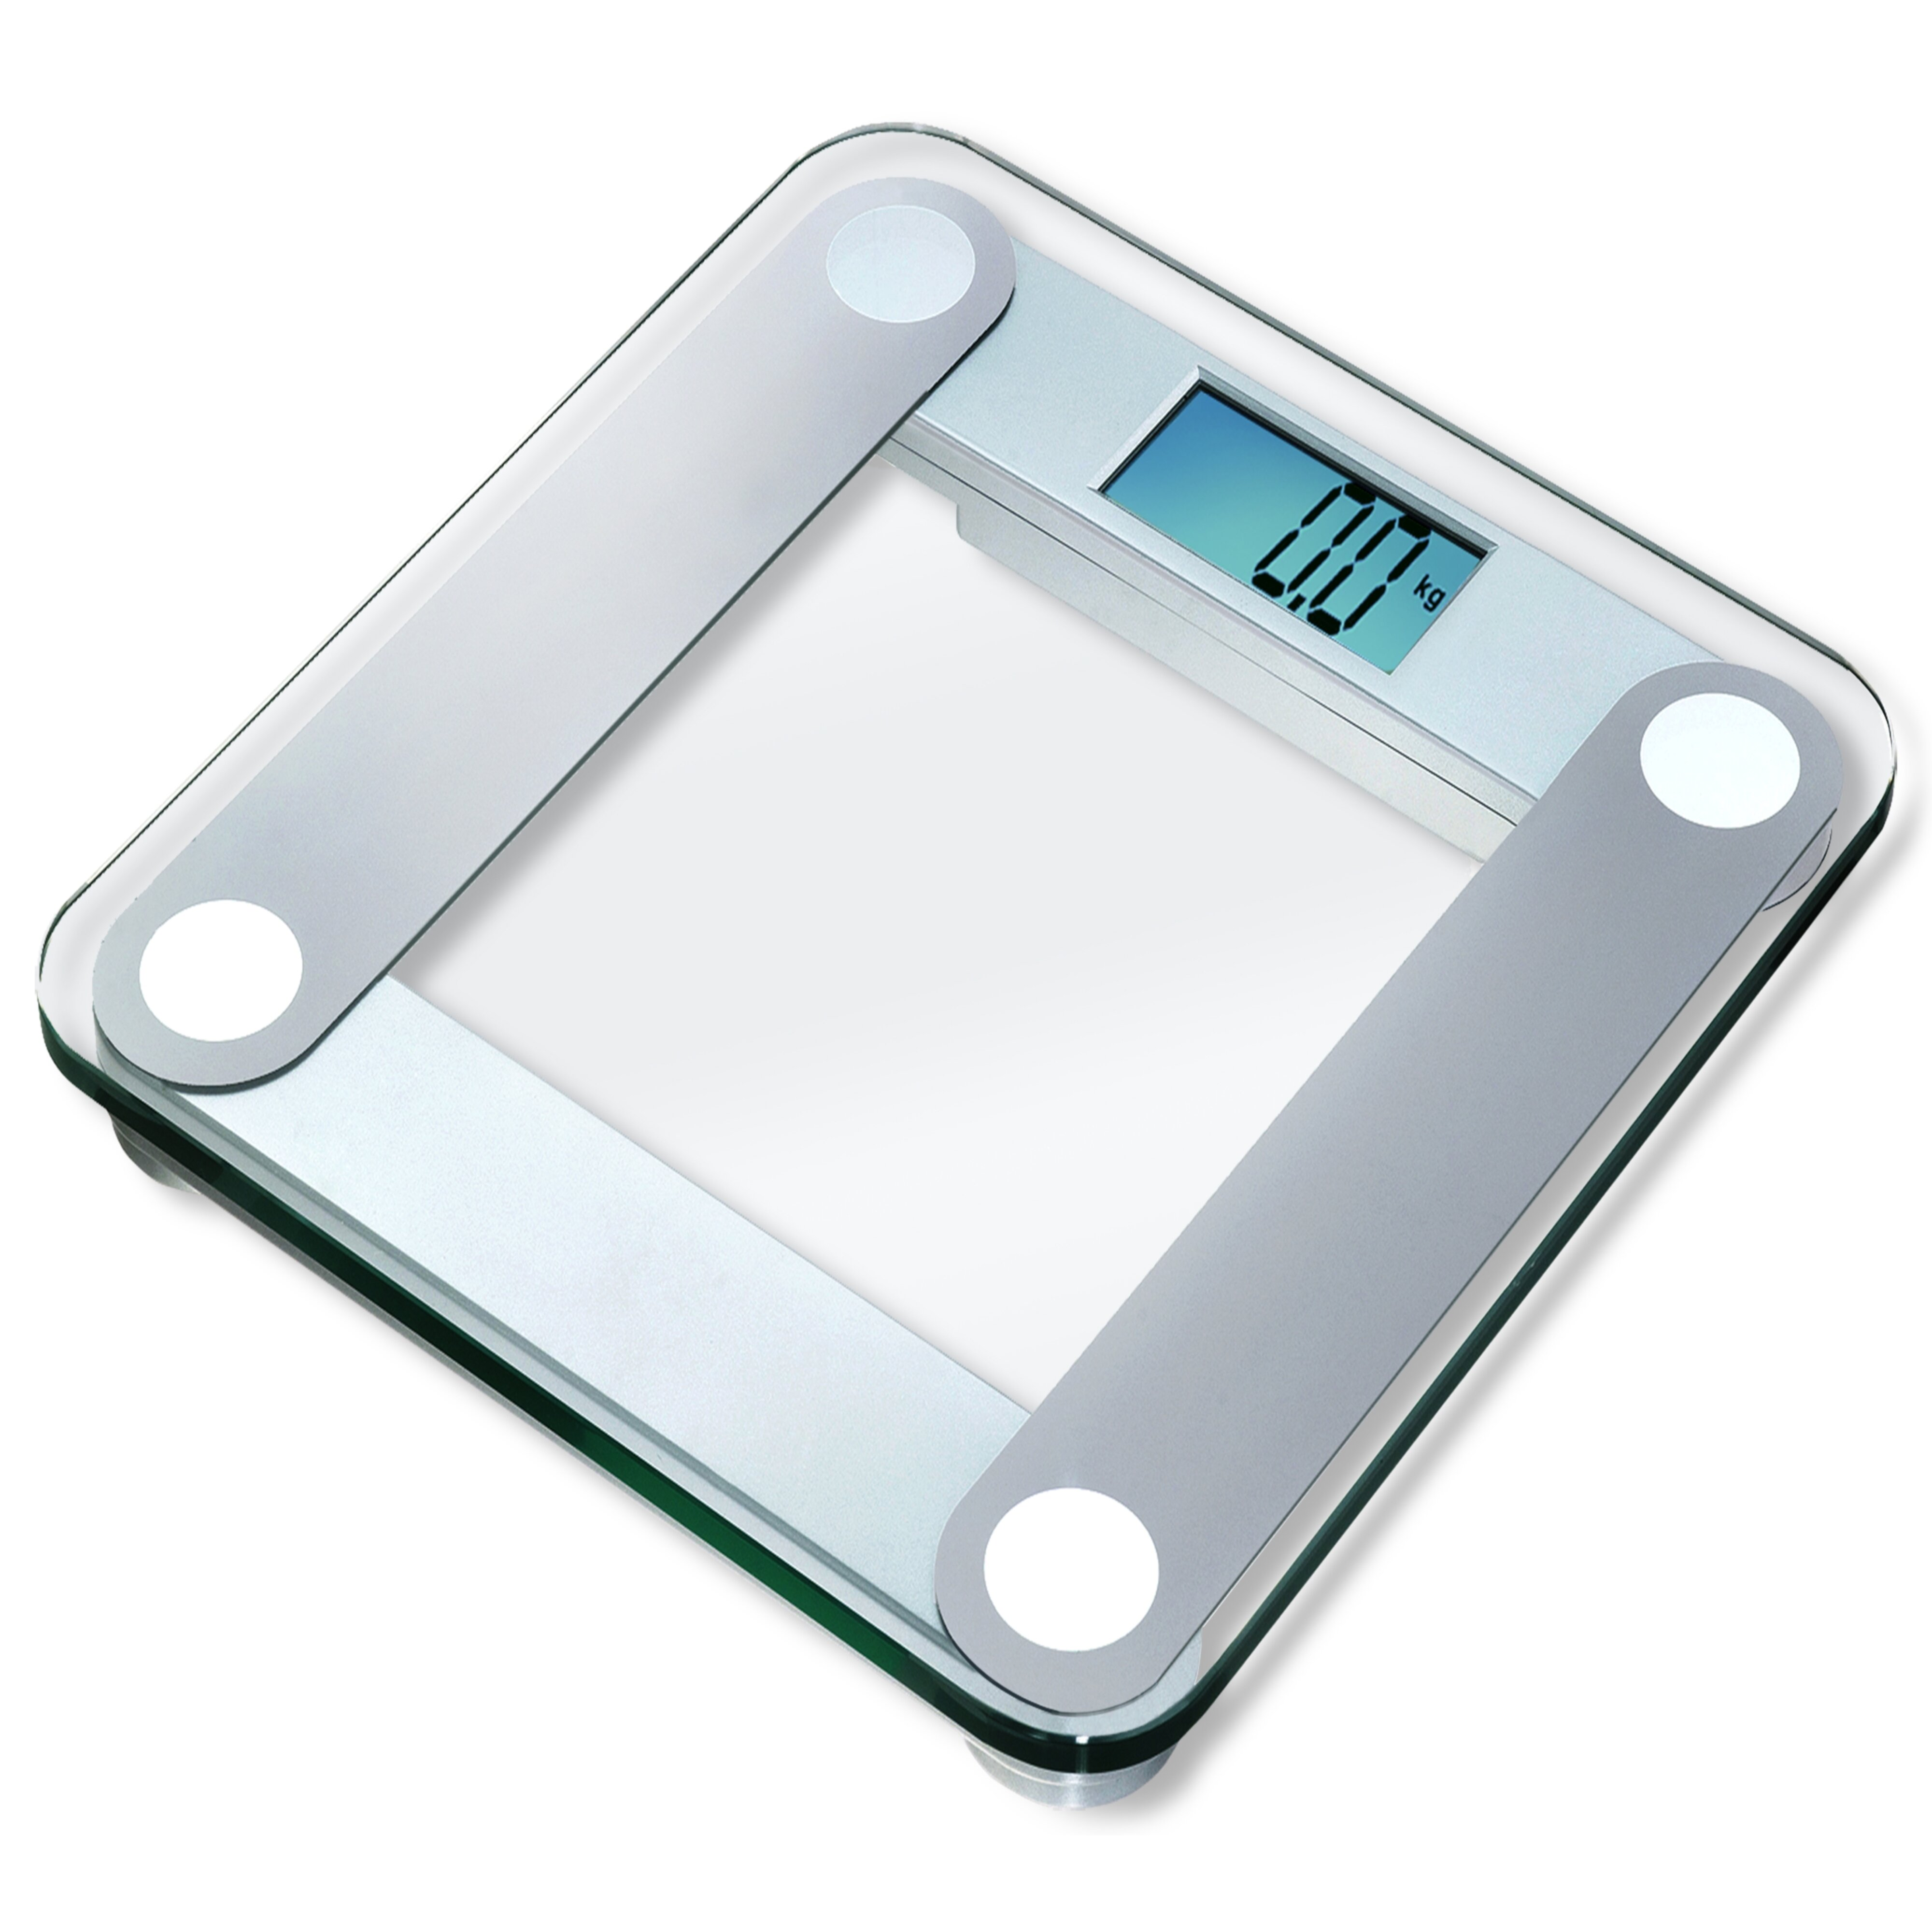 Calibrate digital bathroom scale - Eatsmart Digital Bathroom Scale With Extra Large Backlight In Silver Eatsmart Digital Bathroom Scale With